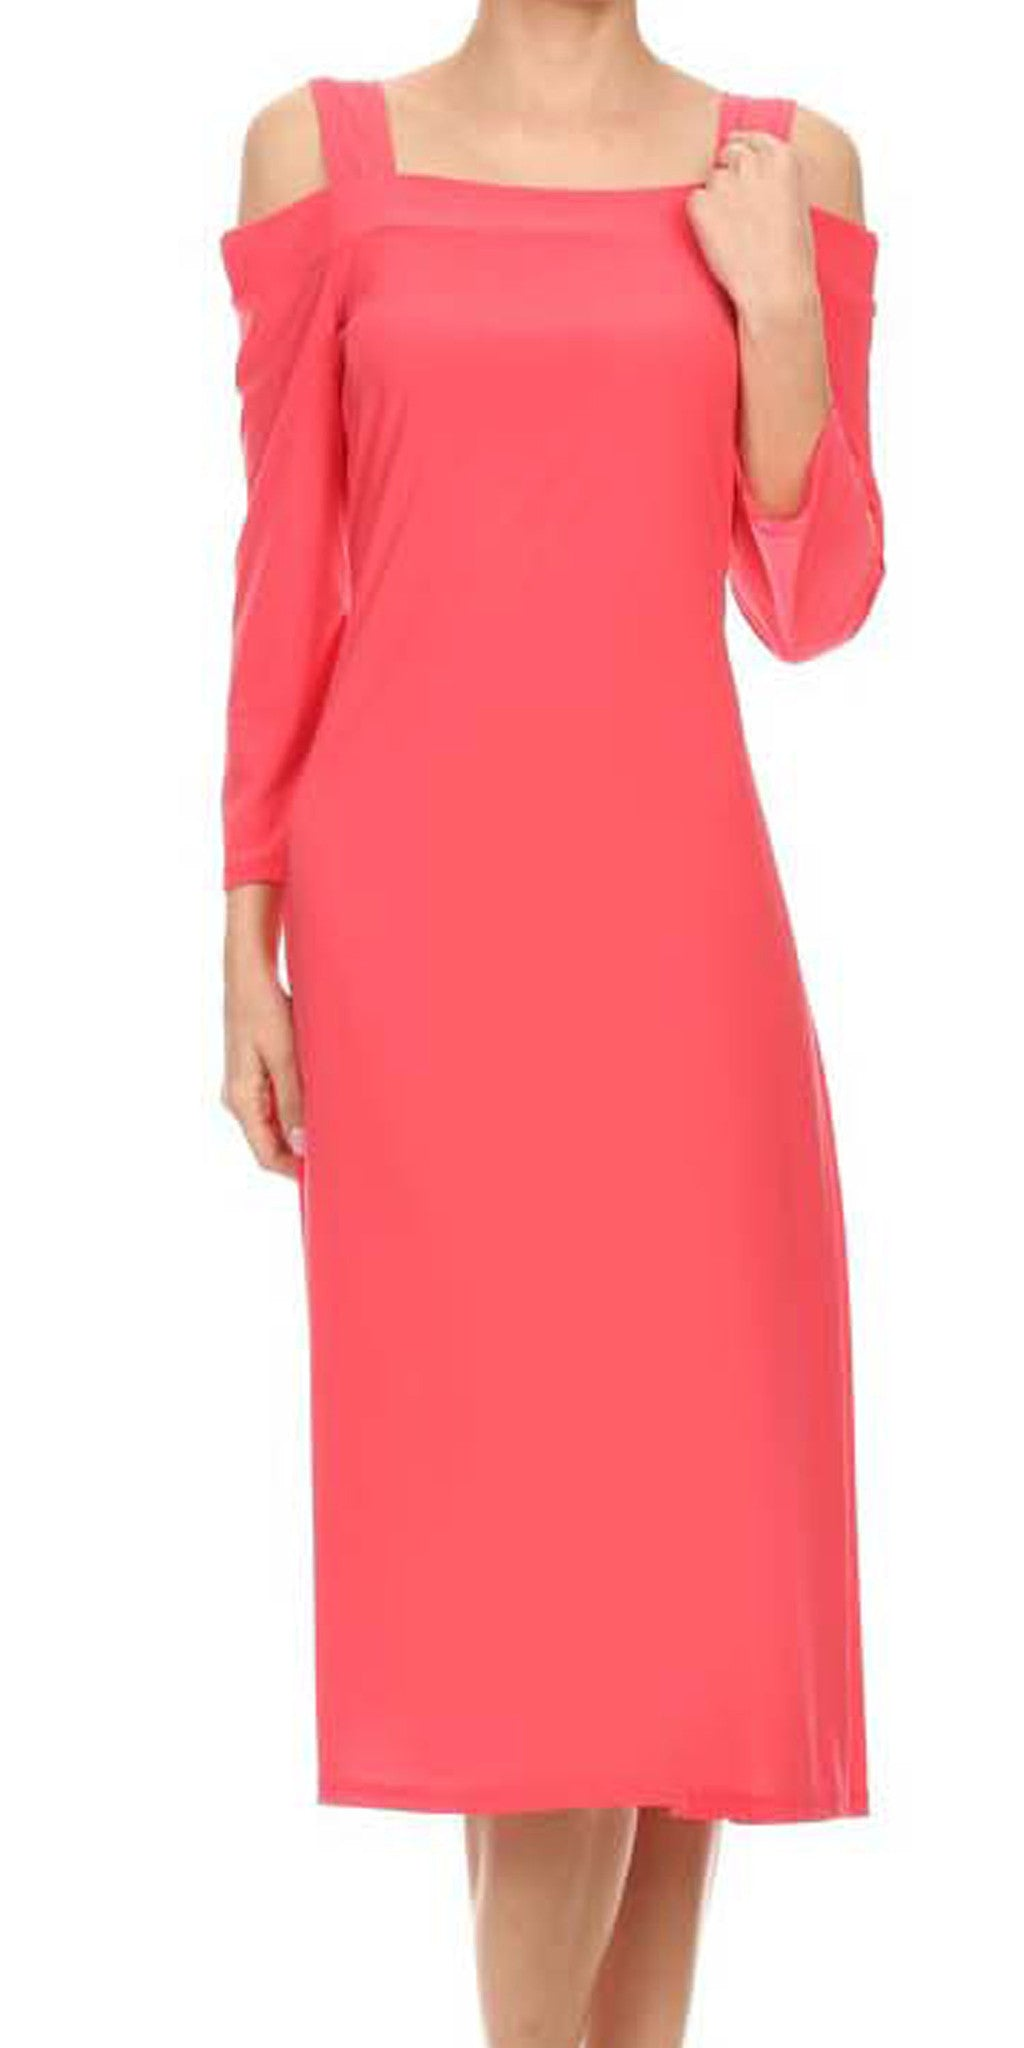 Avital Cold Shoulder Stretch Midi Dress (Coral Pink),Dress,Avital - Discount Divas